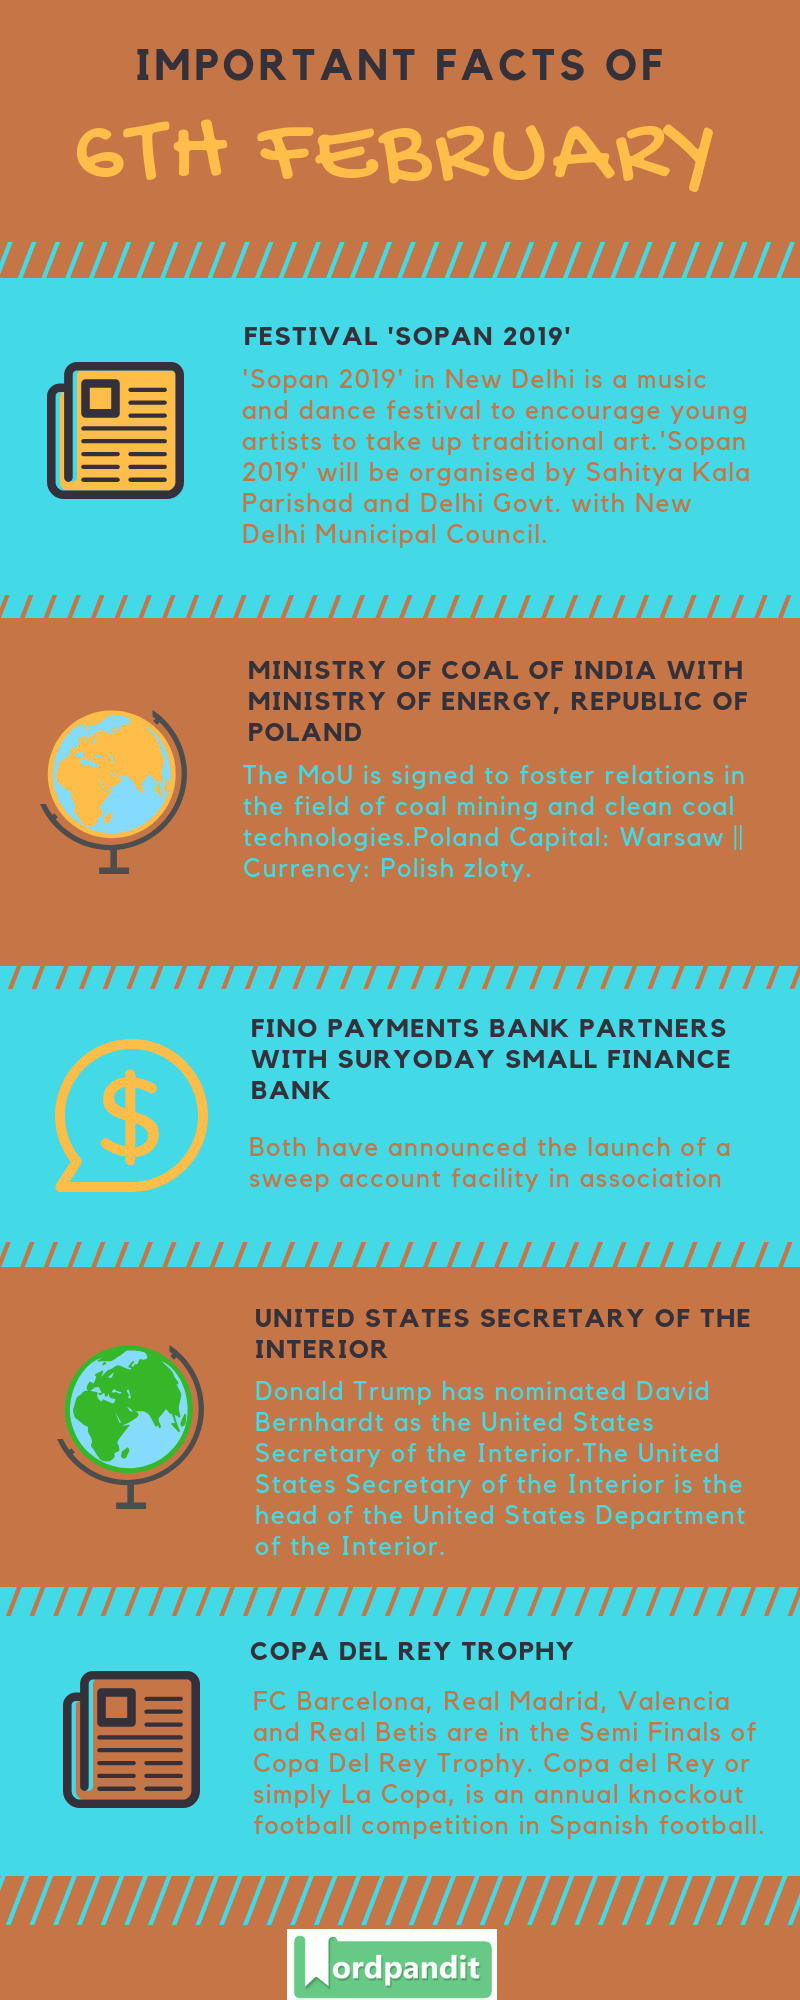 Daily Current Affairs 6 February 2019 Current Affairs Quiz 6 February 2019 Current Affairs Infographic